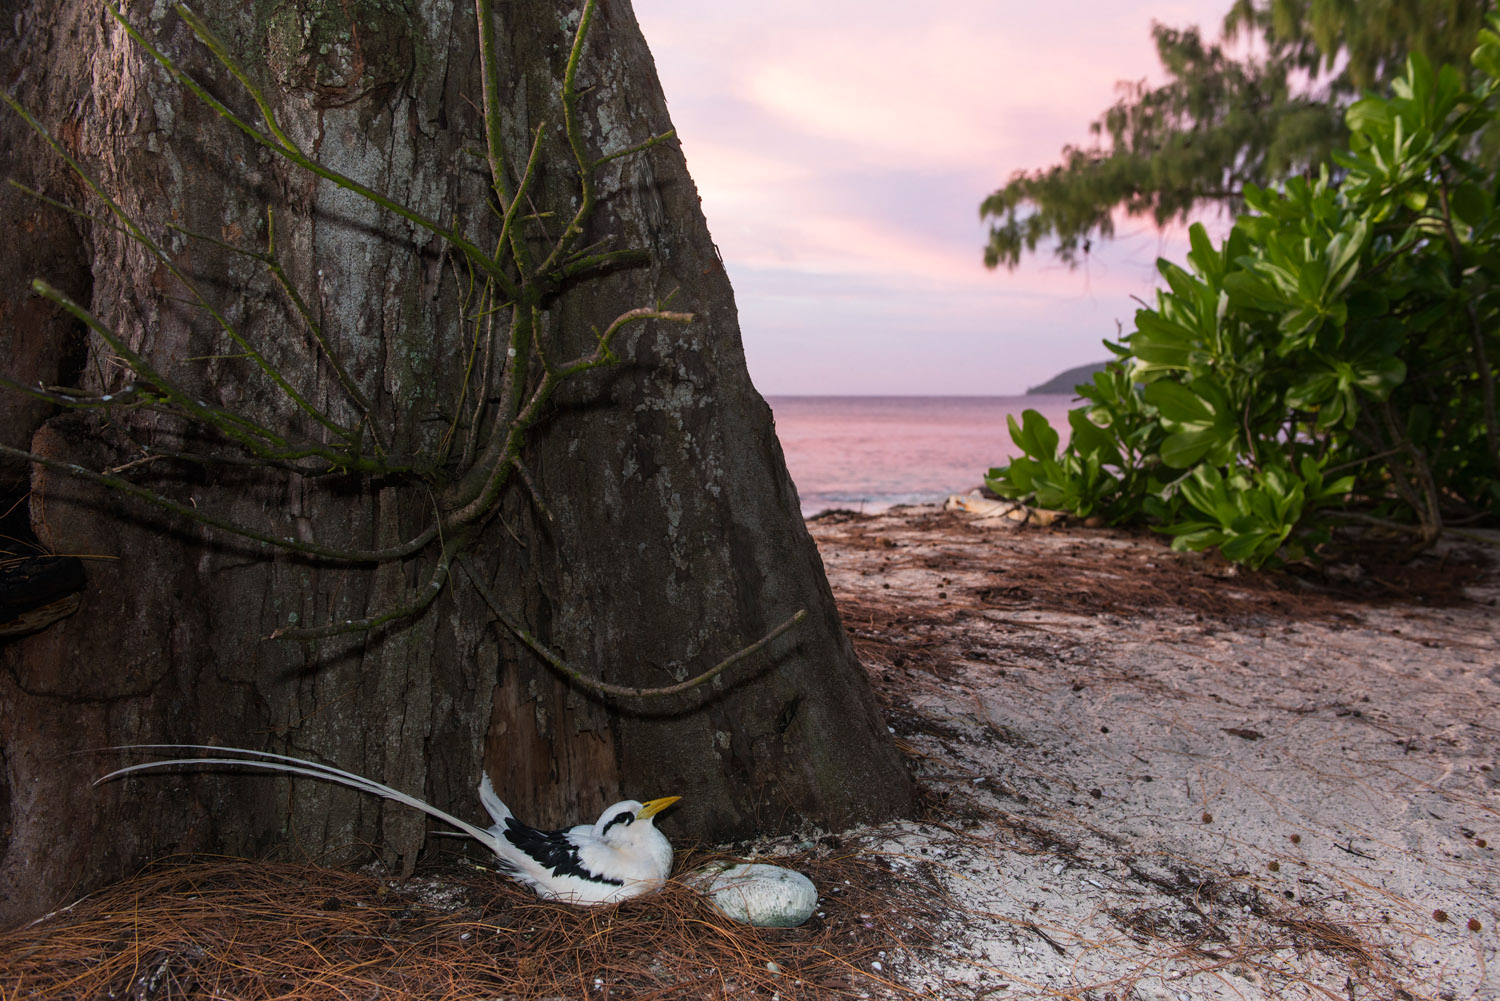 White-tailed tropicbird nesting at base of casuarina tree at twilight, Cousin Island Special Reserve, Seychelles